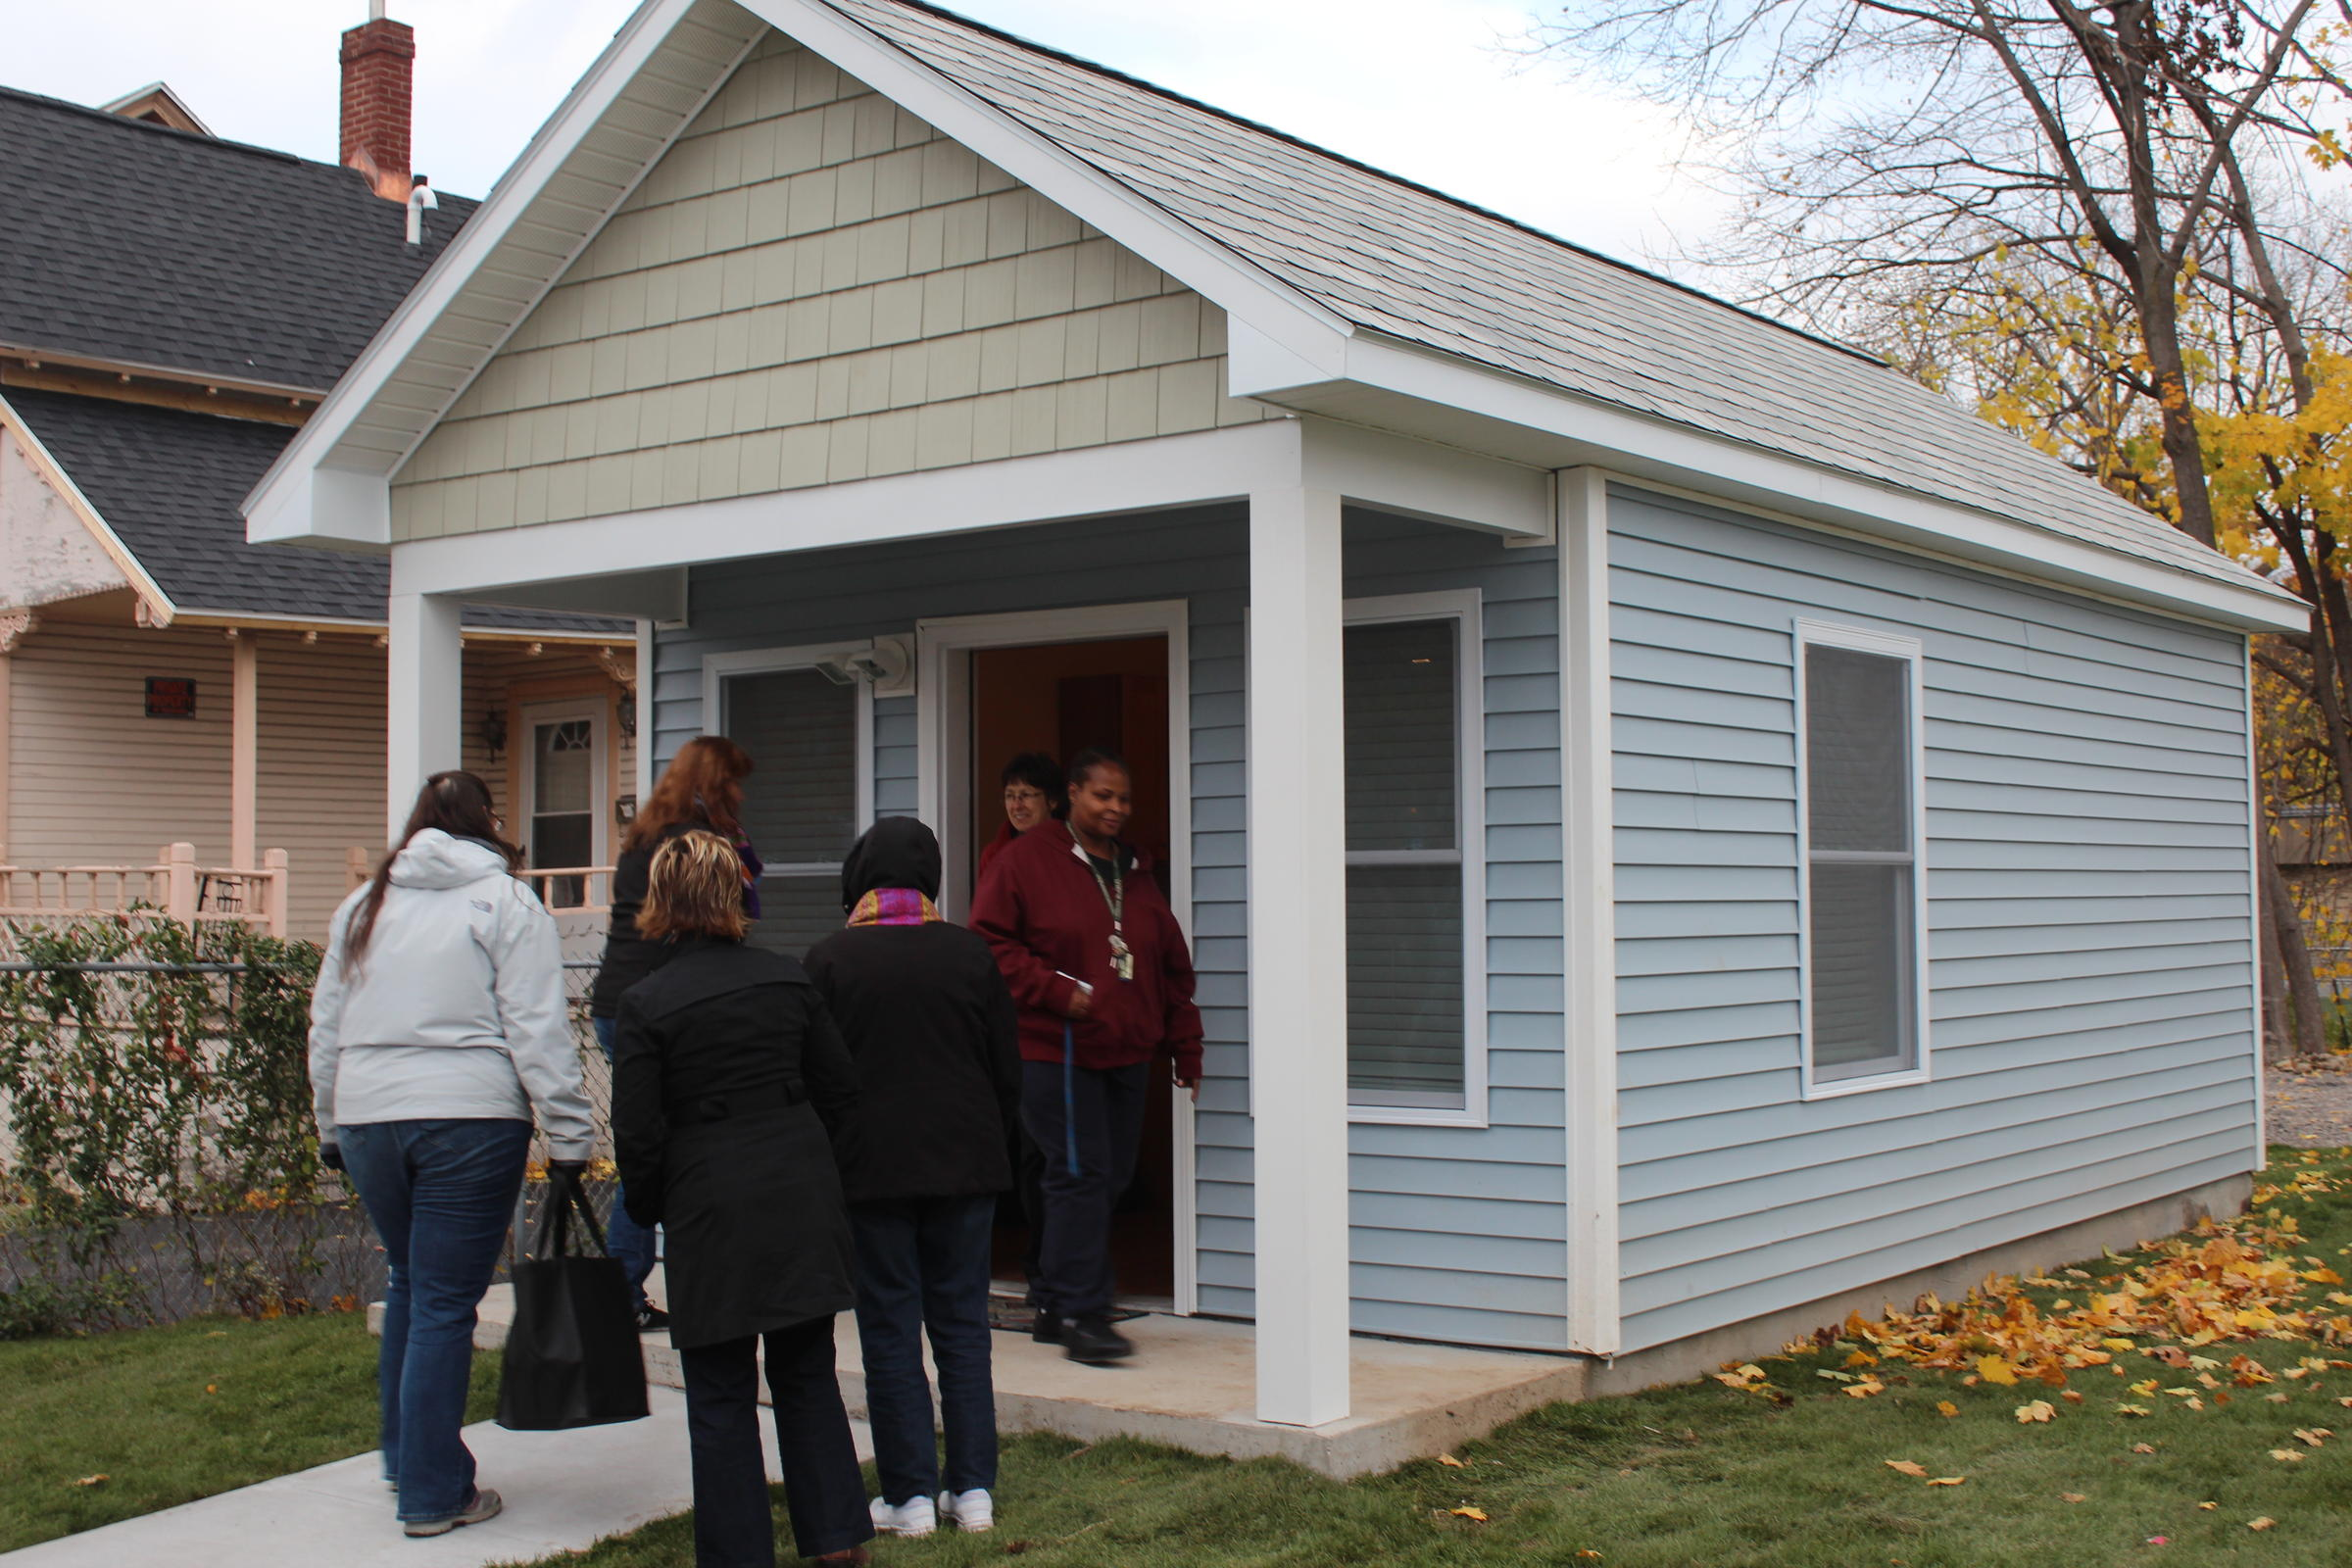 The Nonprofit A Tiny Home For Good Opens Three More Homes In Syracuse